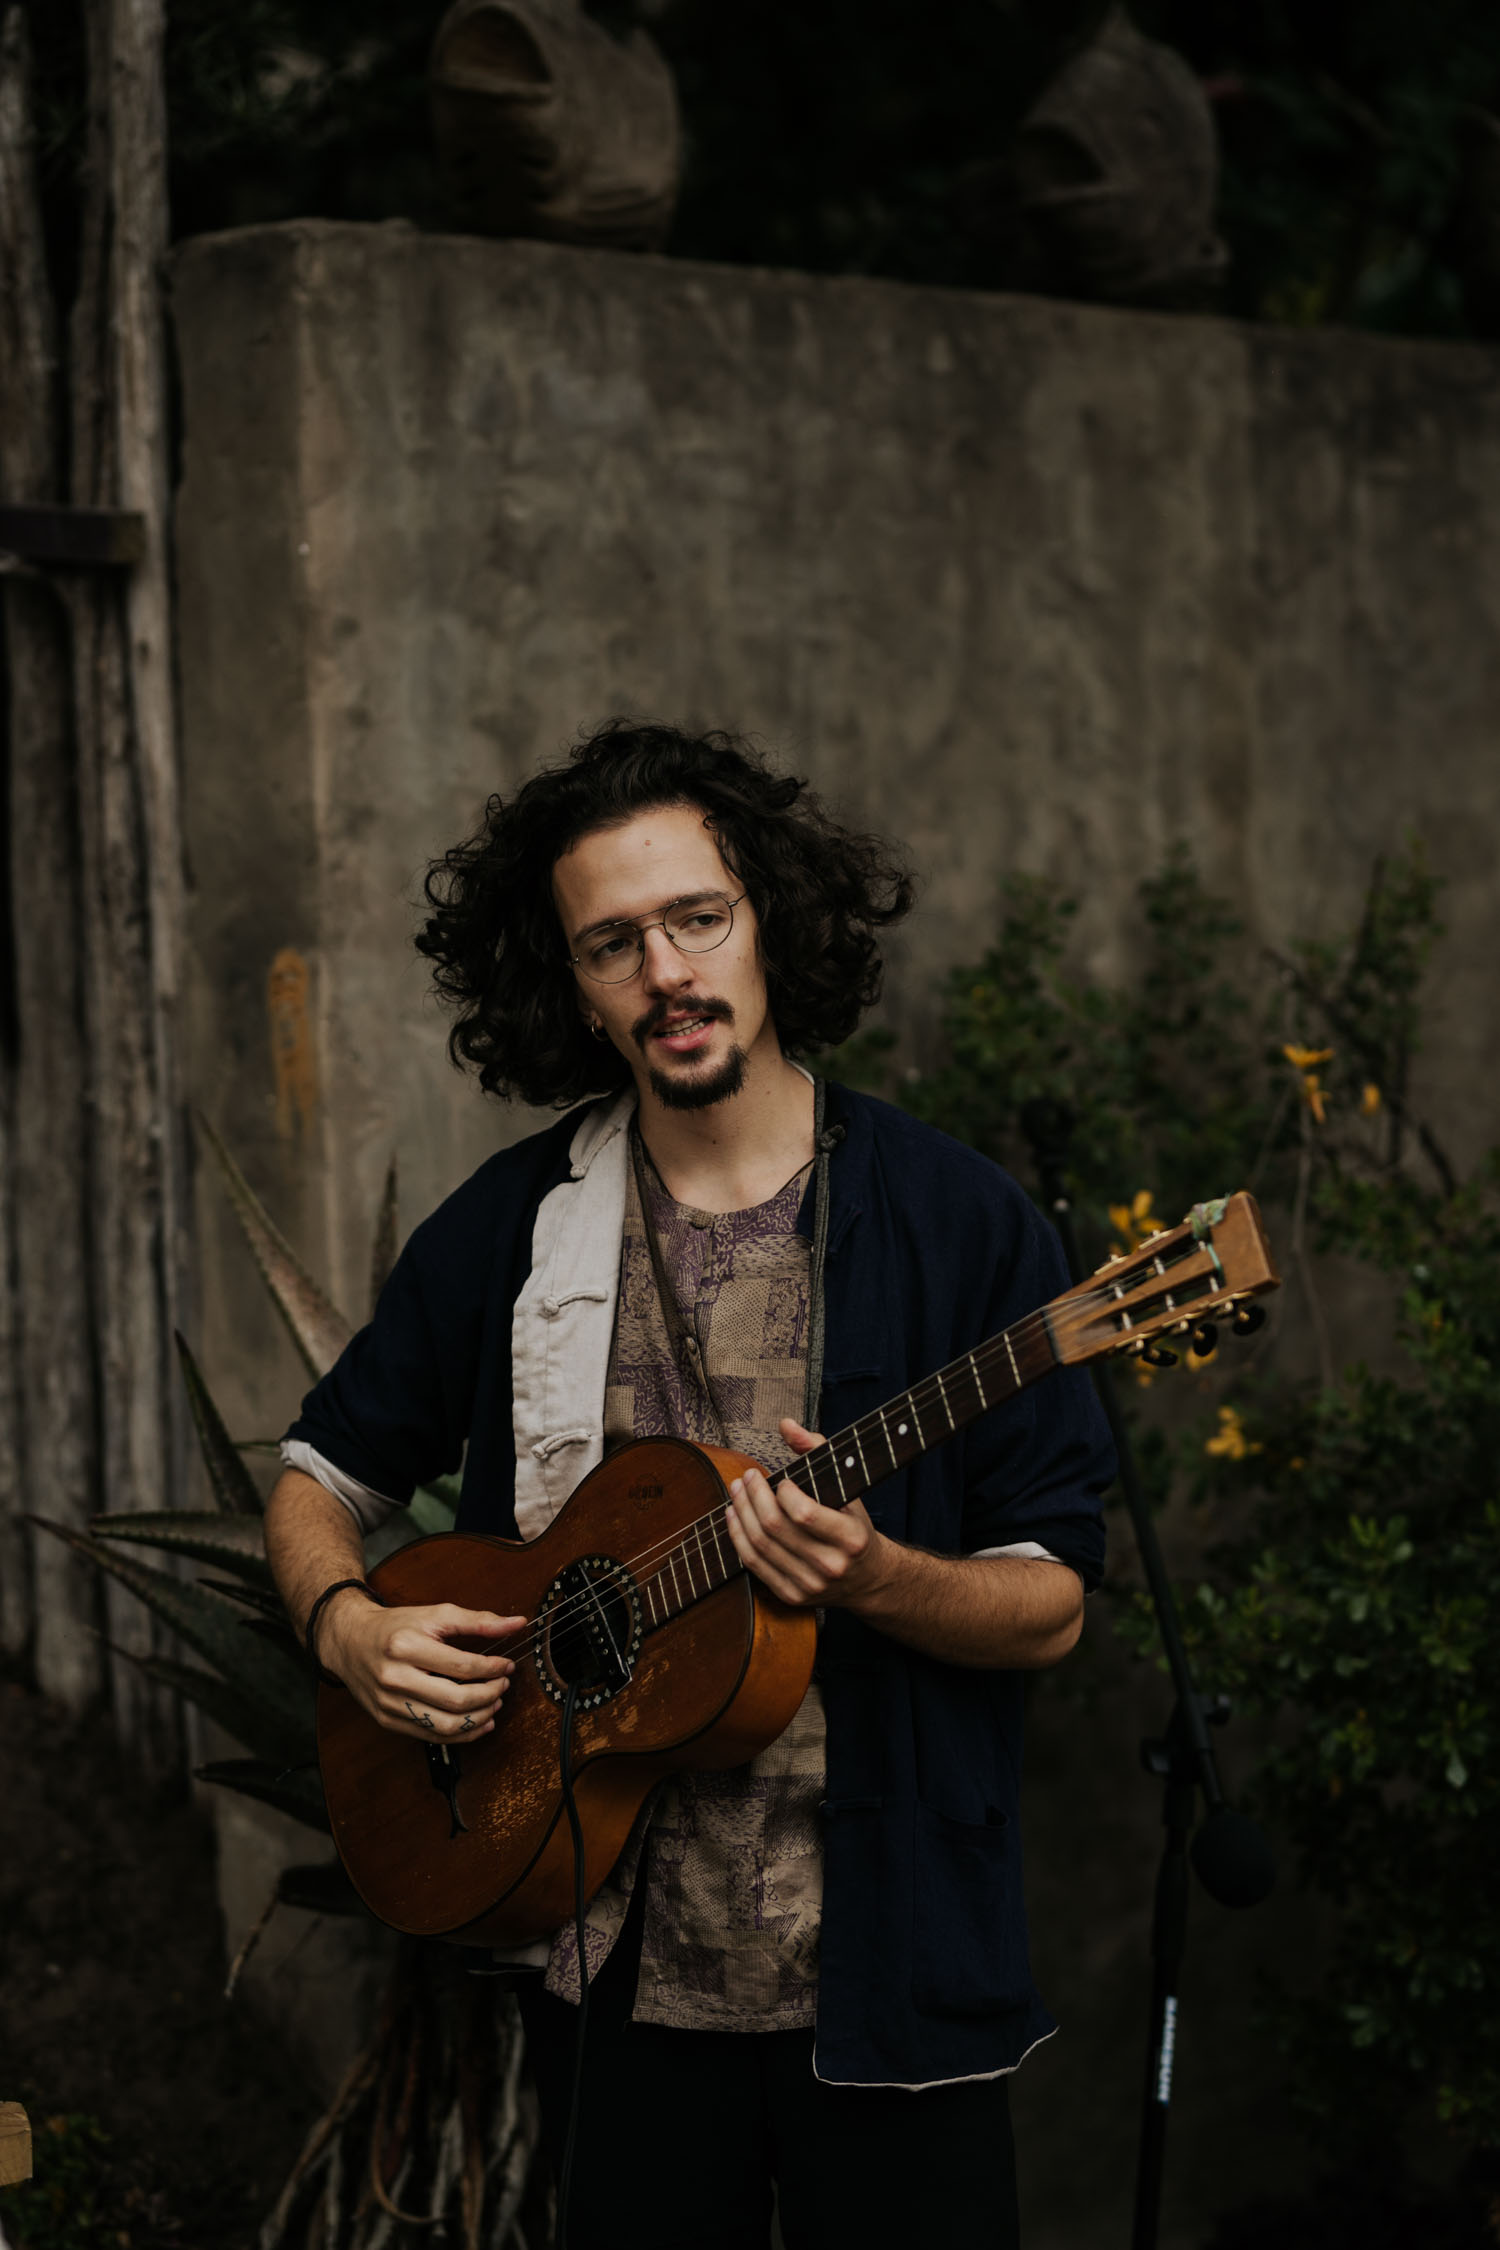 Indie curly haired wedding musician at boho wedding ceremony